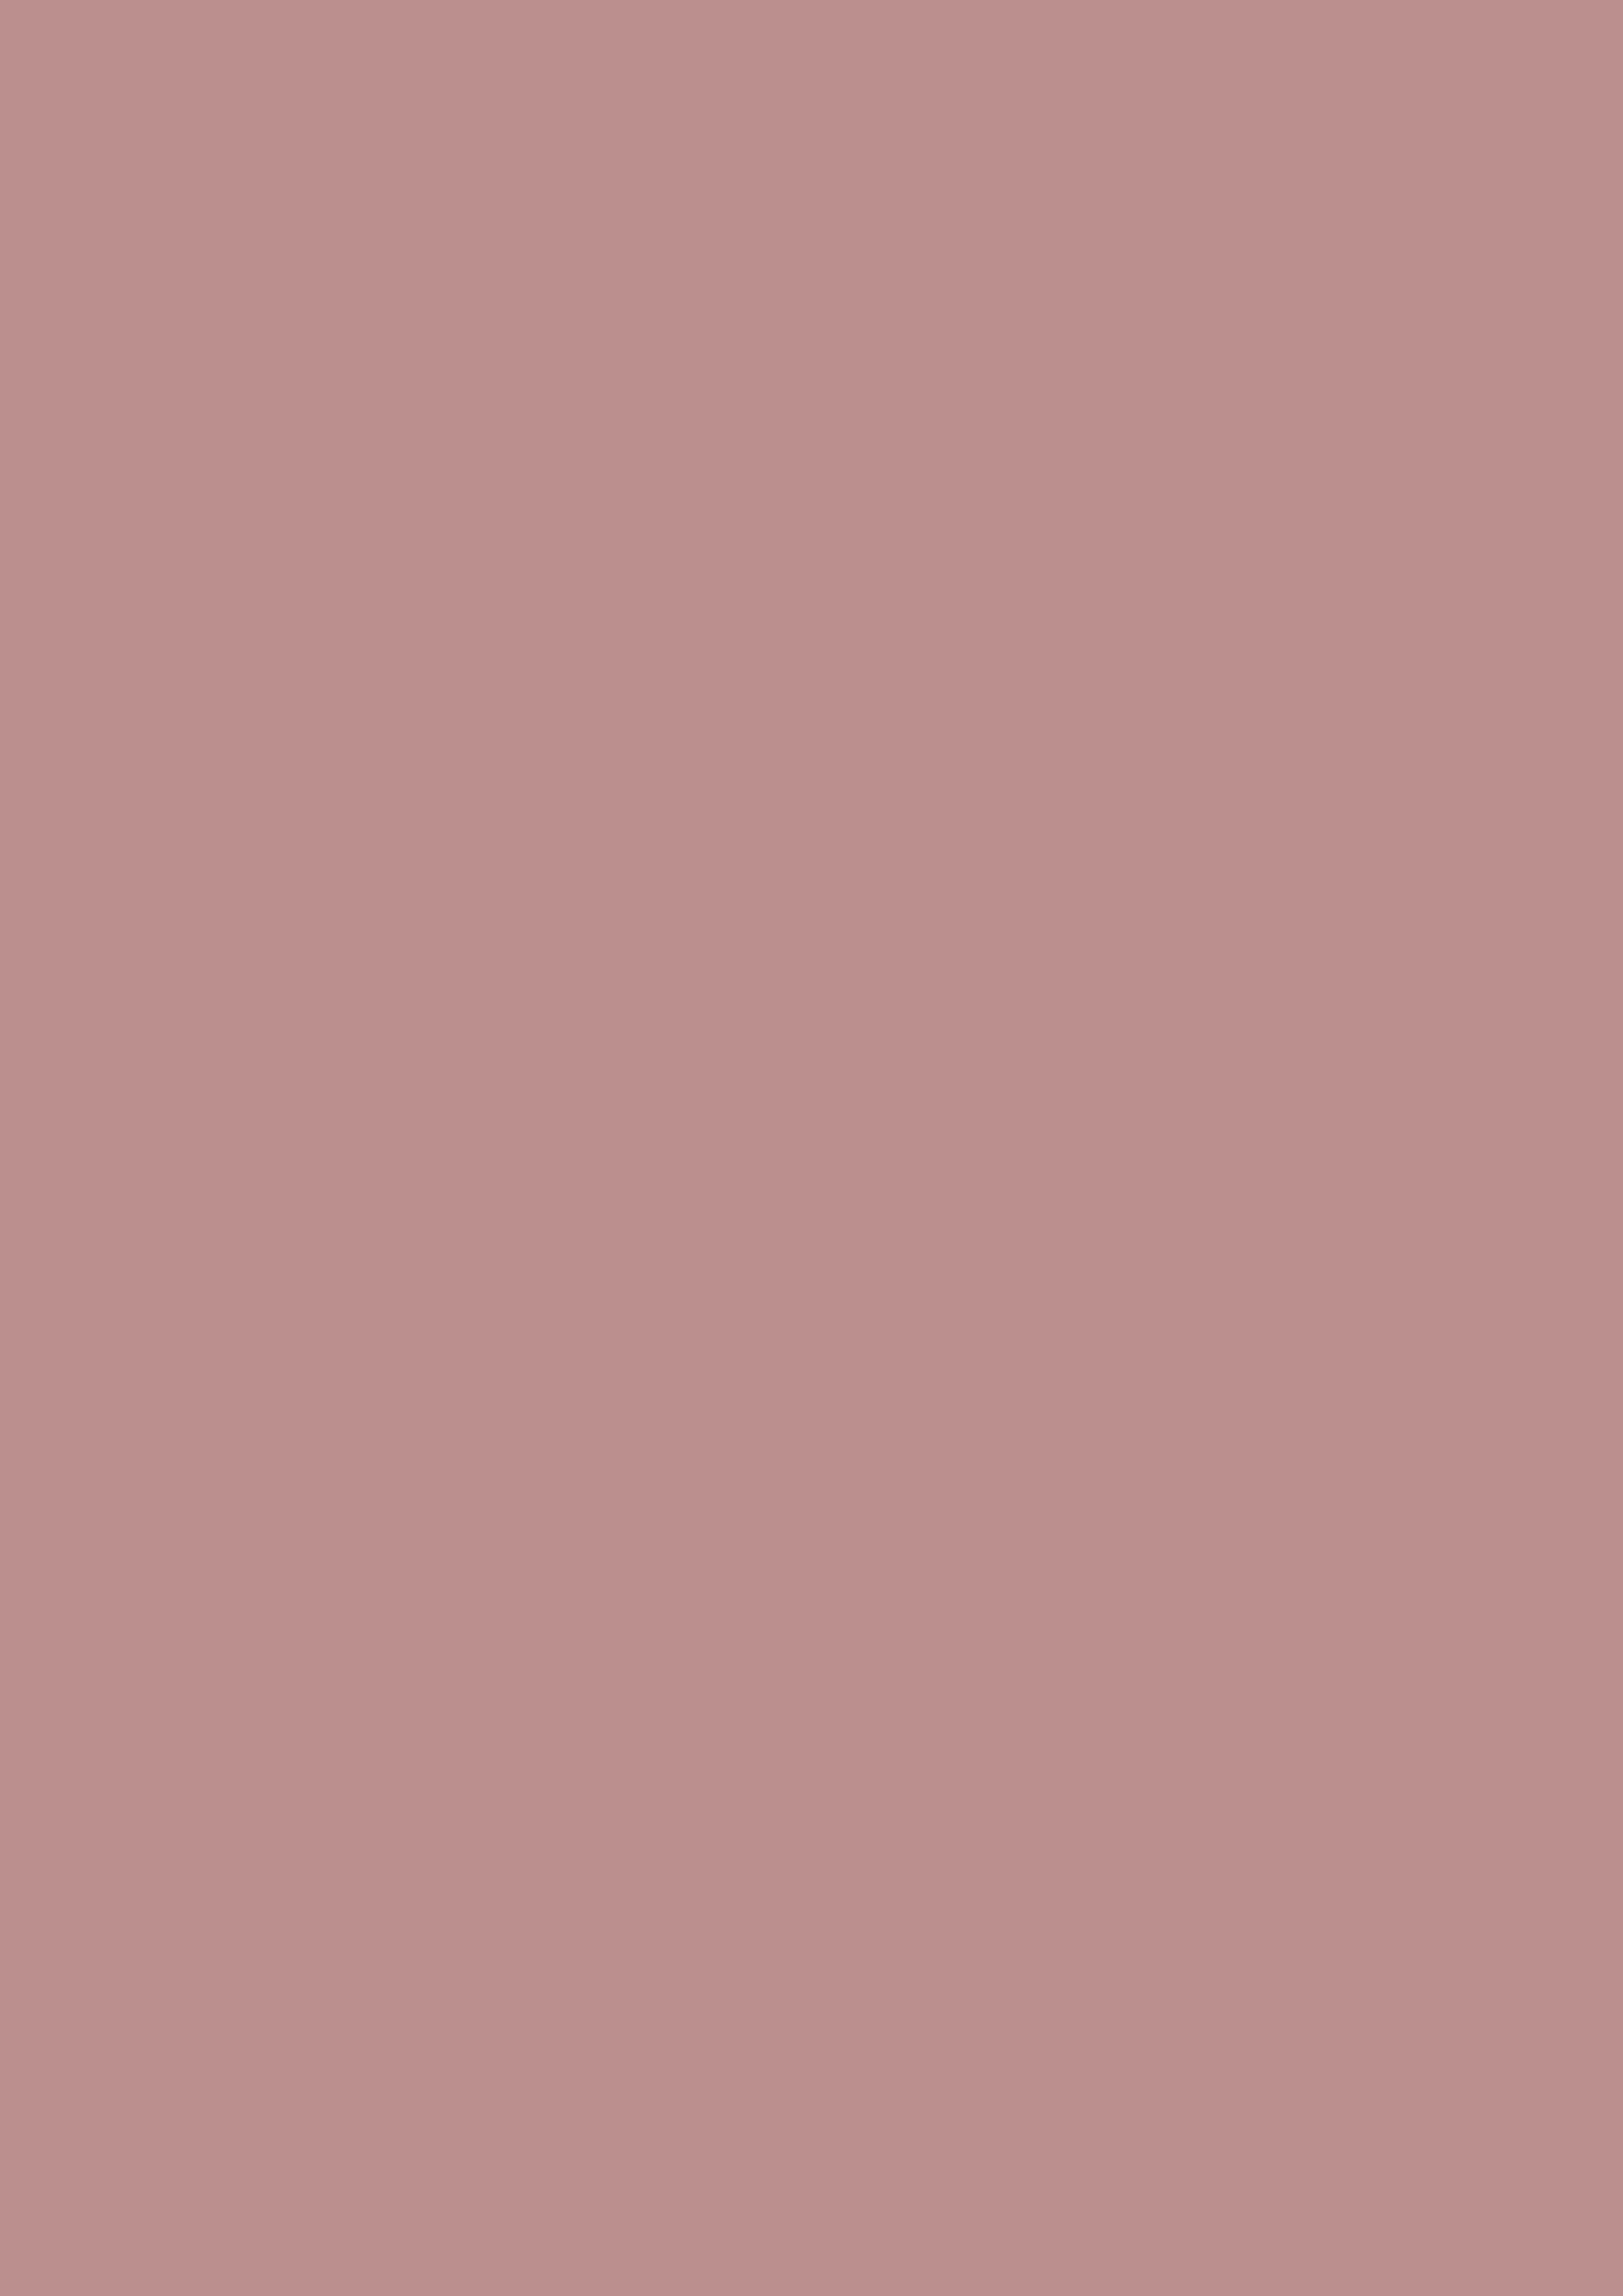 2480x3508 Rosy Brown Solid Color Background